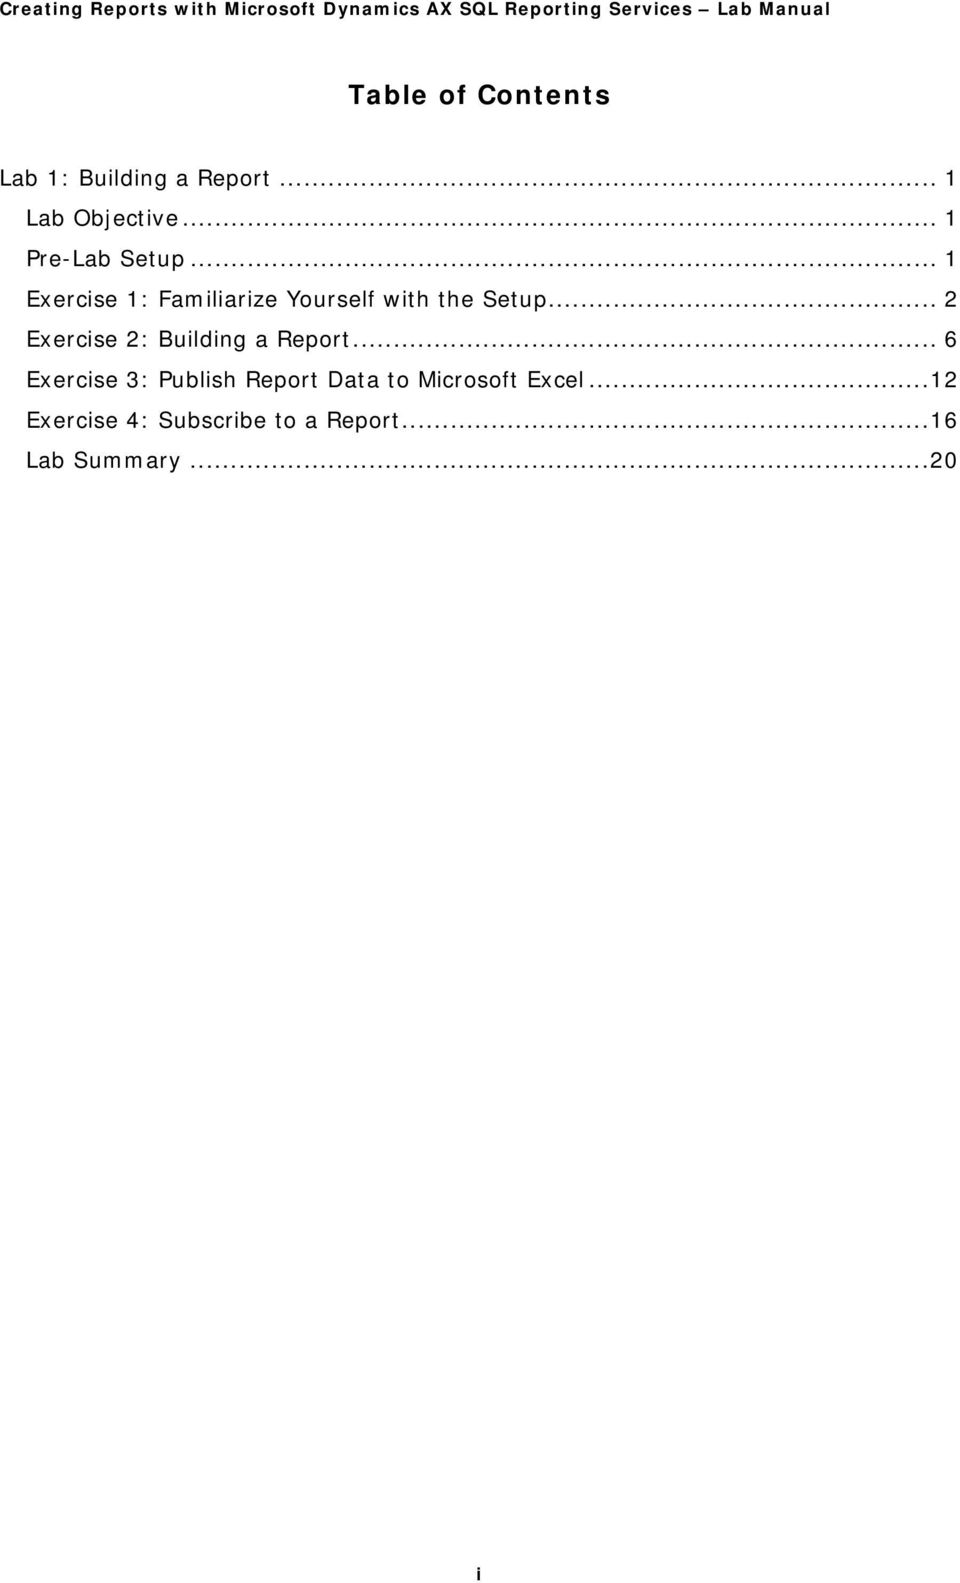 Creating Reports with Microsoft Dynamics AX SQL Reporting